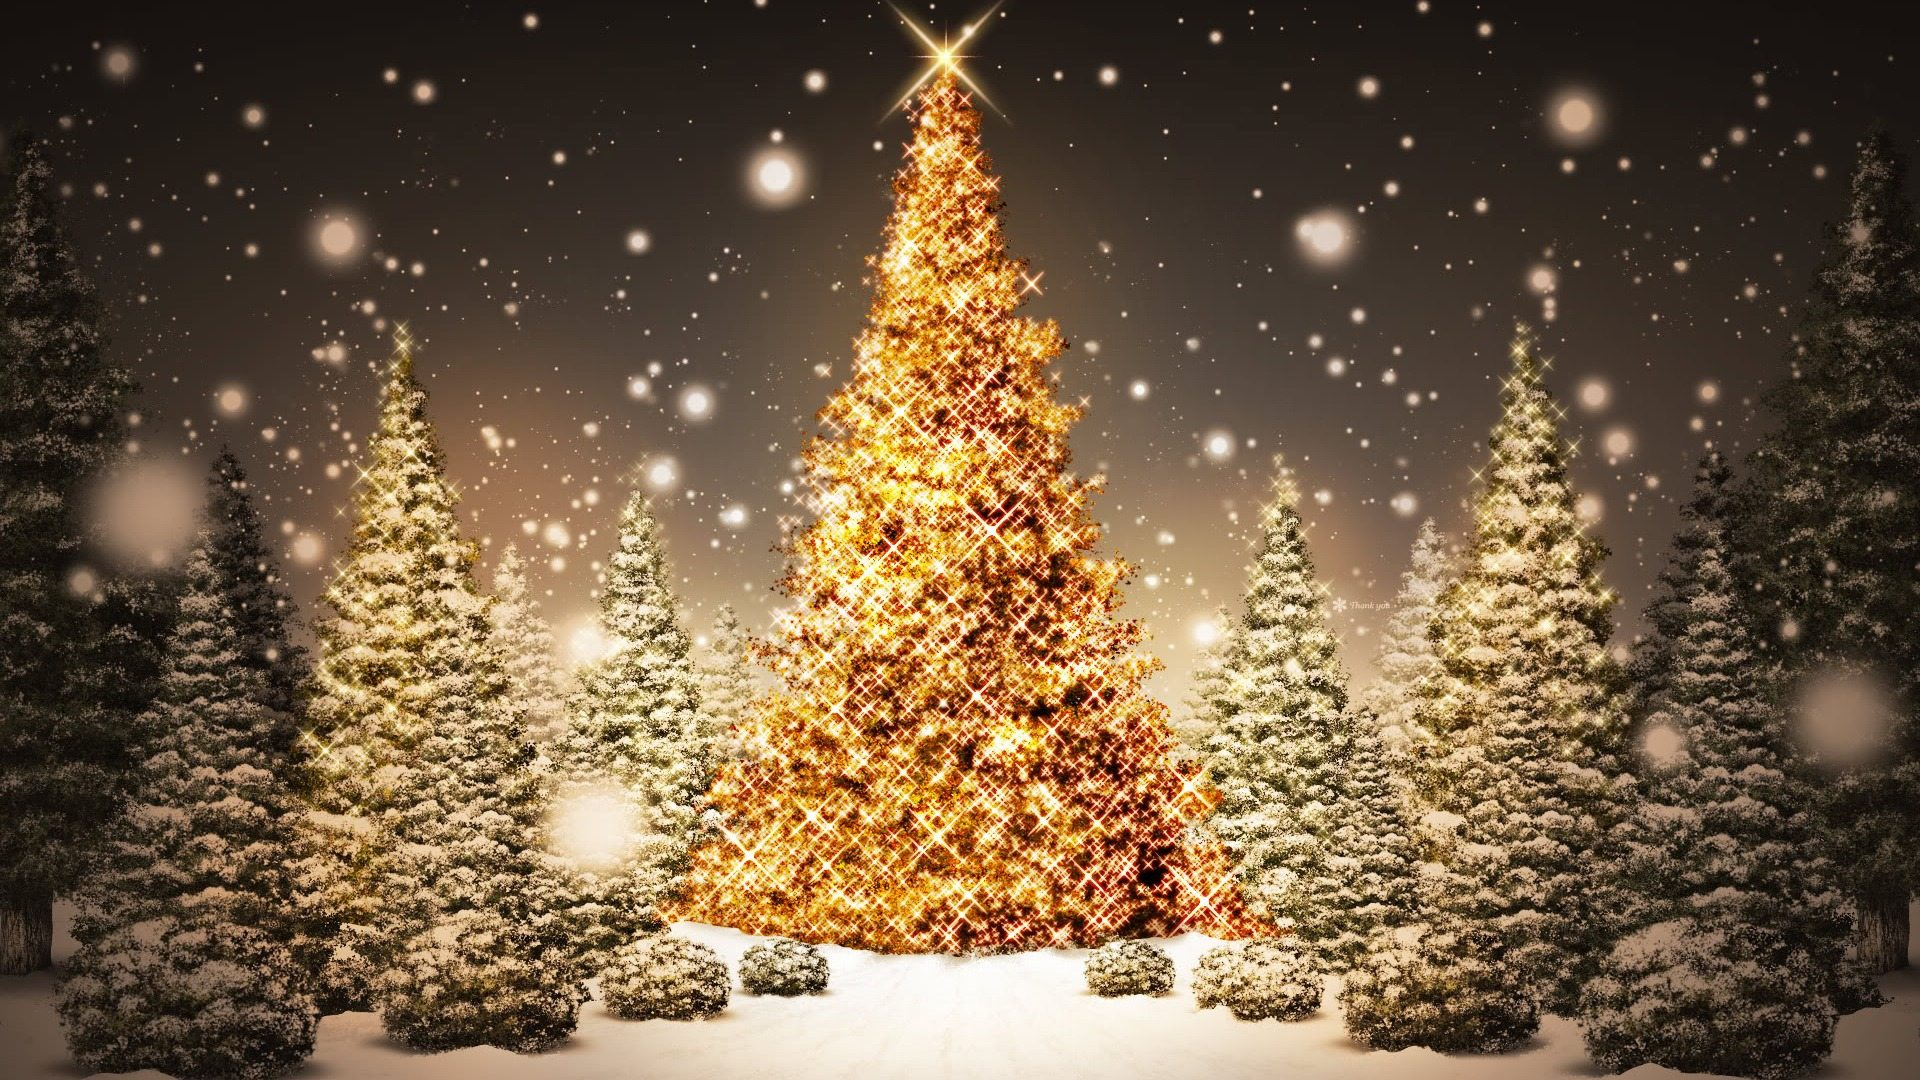 lovely christmas tree wallpaper 1920x1080 26525